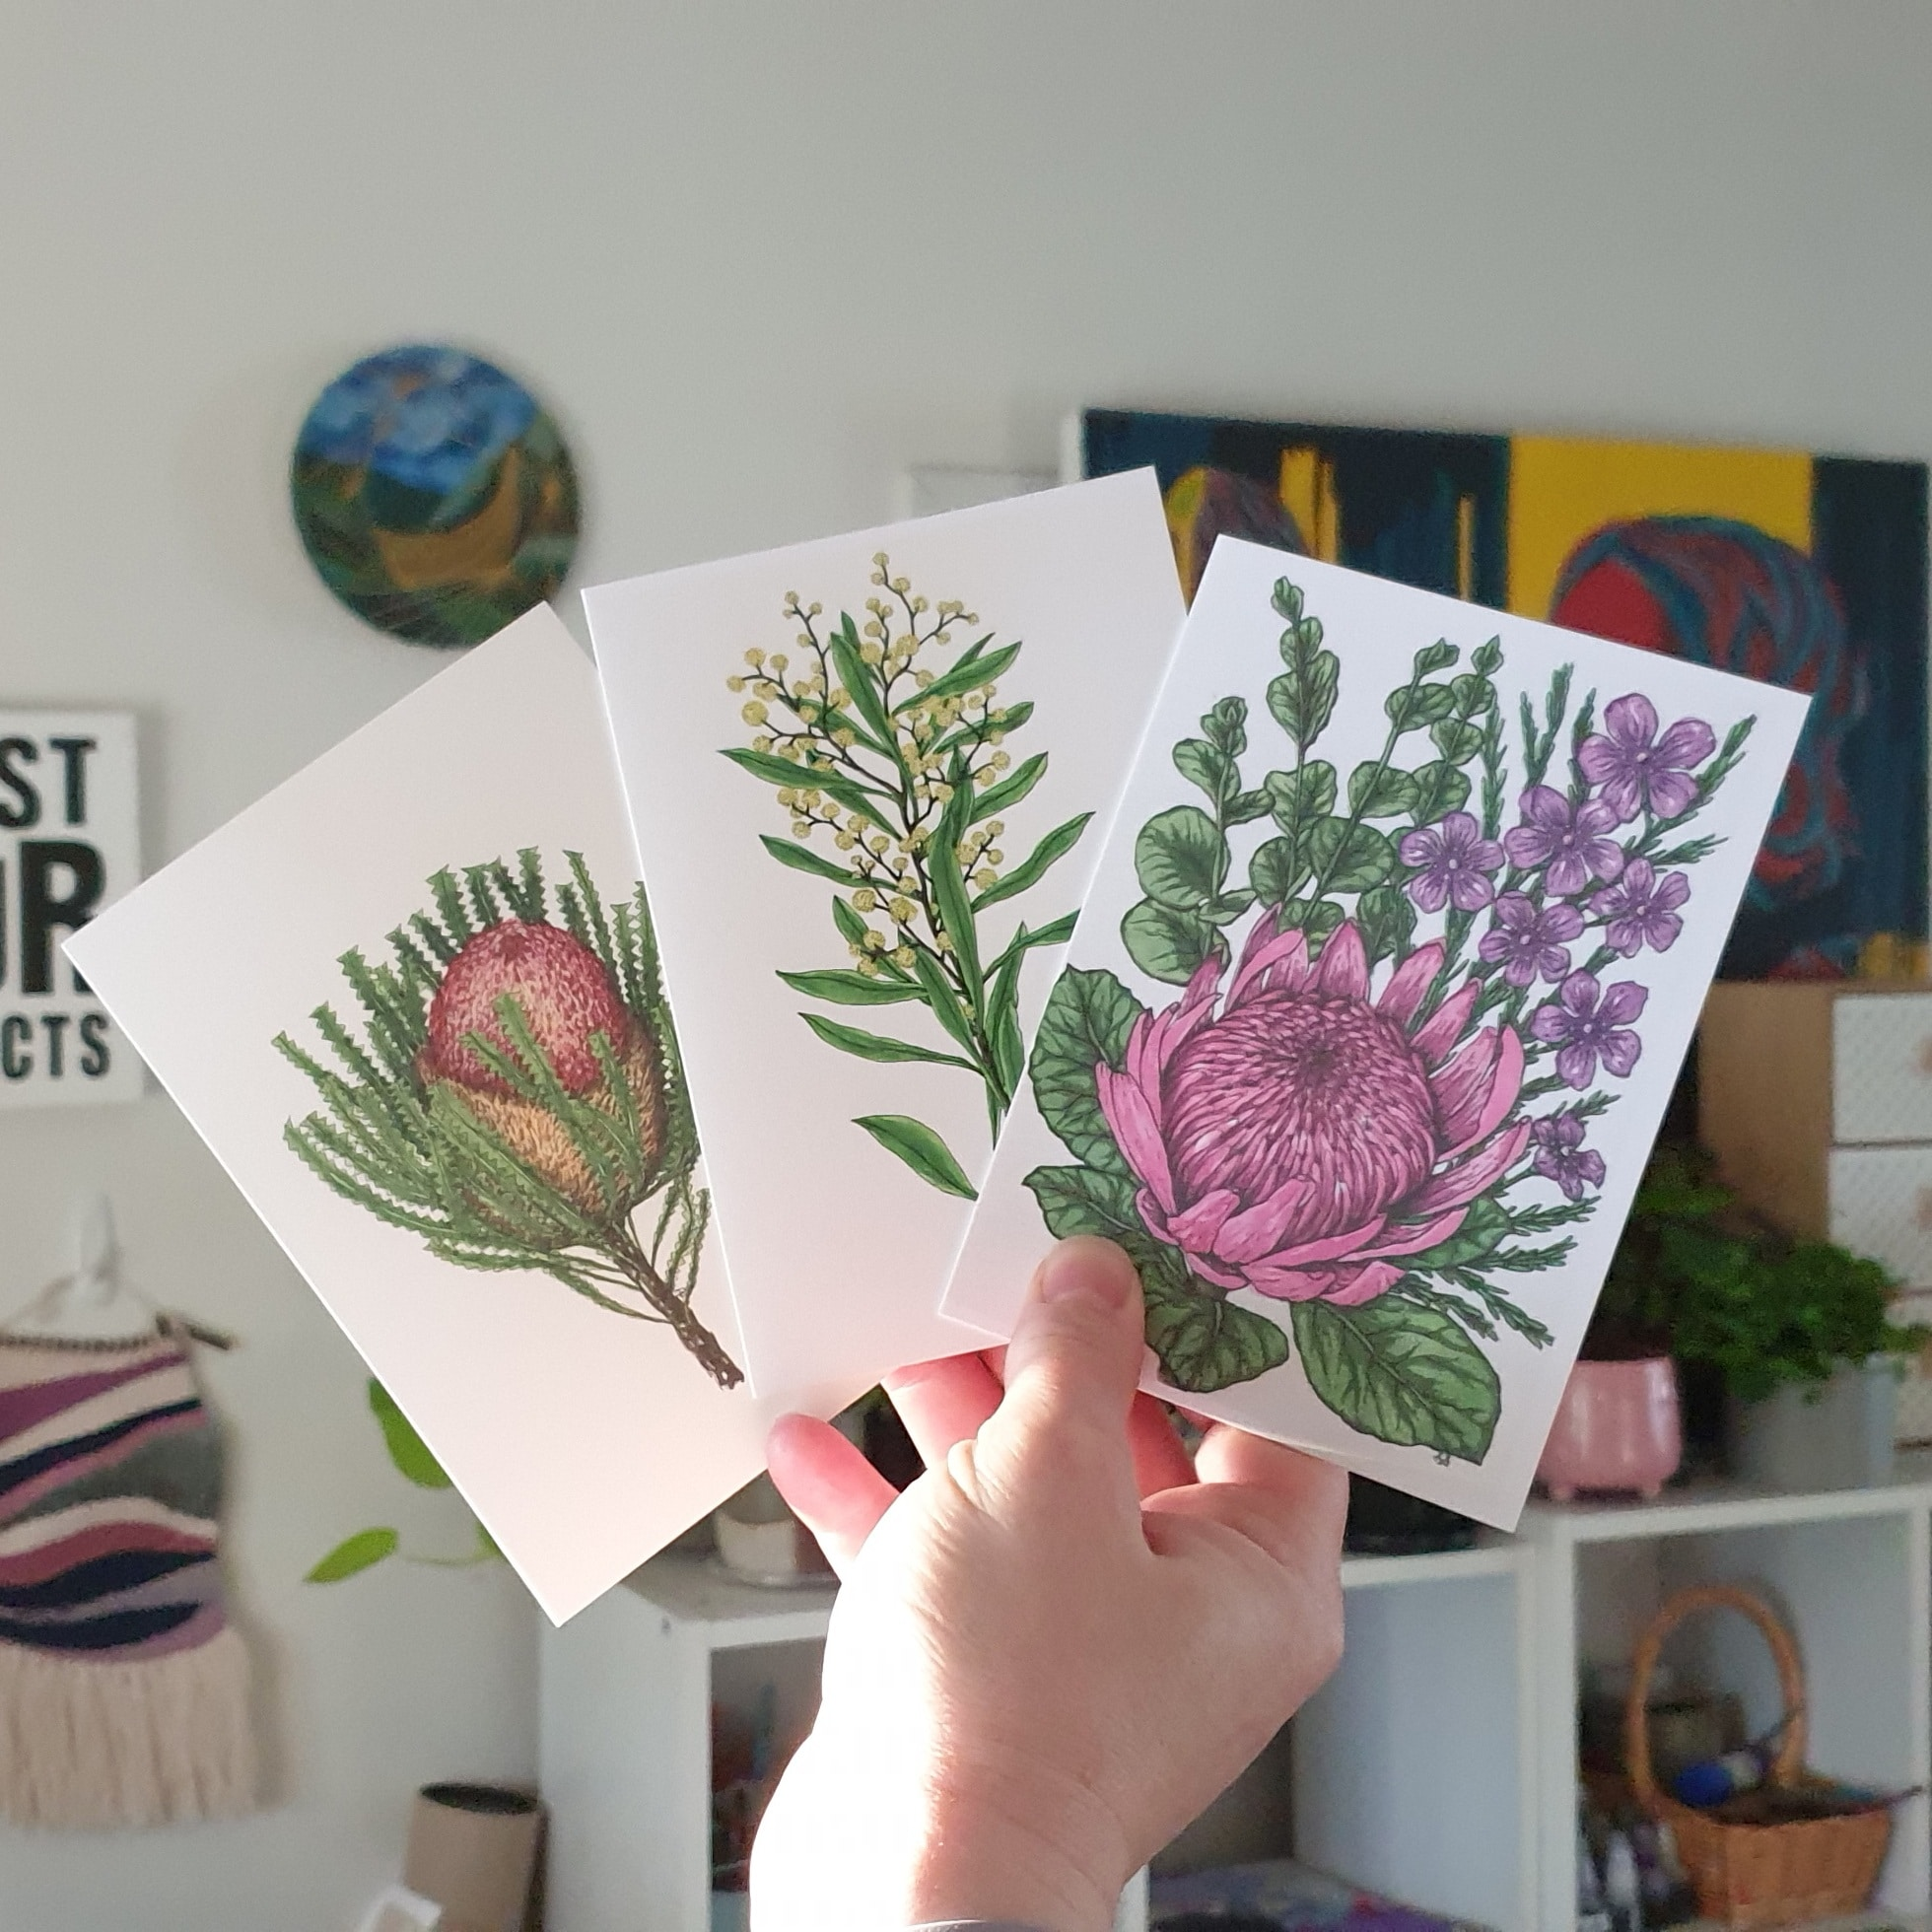 'Aussie Flower 2' Three Card Pack Greeting Cards Botanical Collection Sarah Sheldon Art By A Vibrant Nest